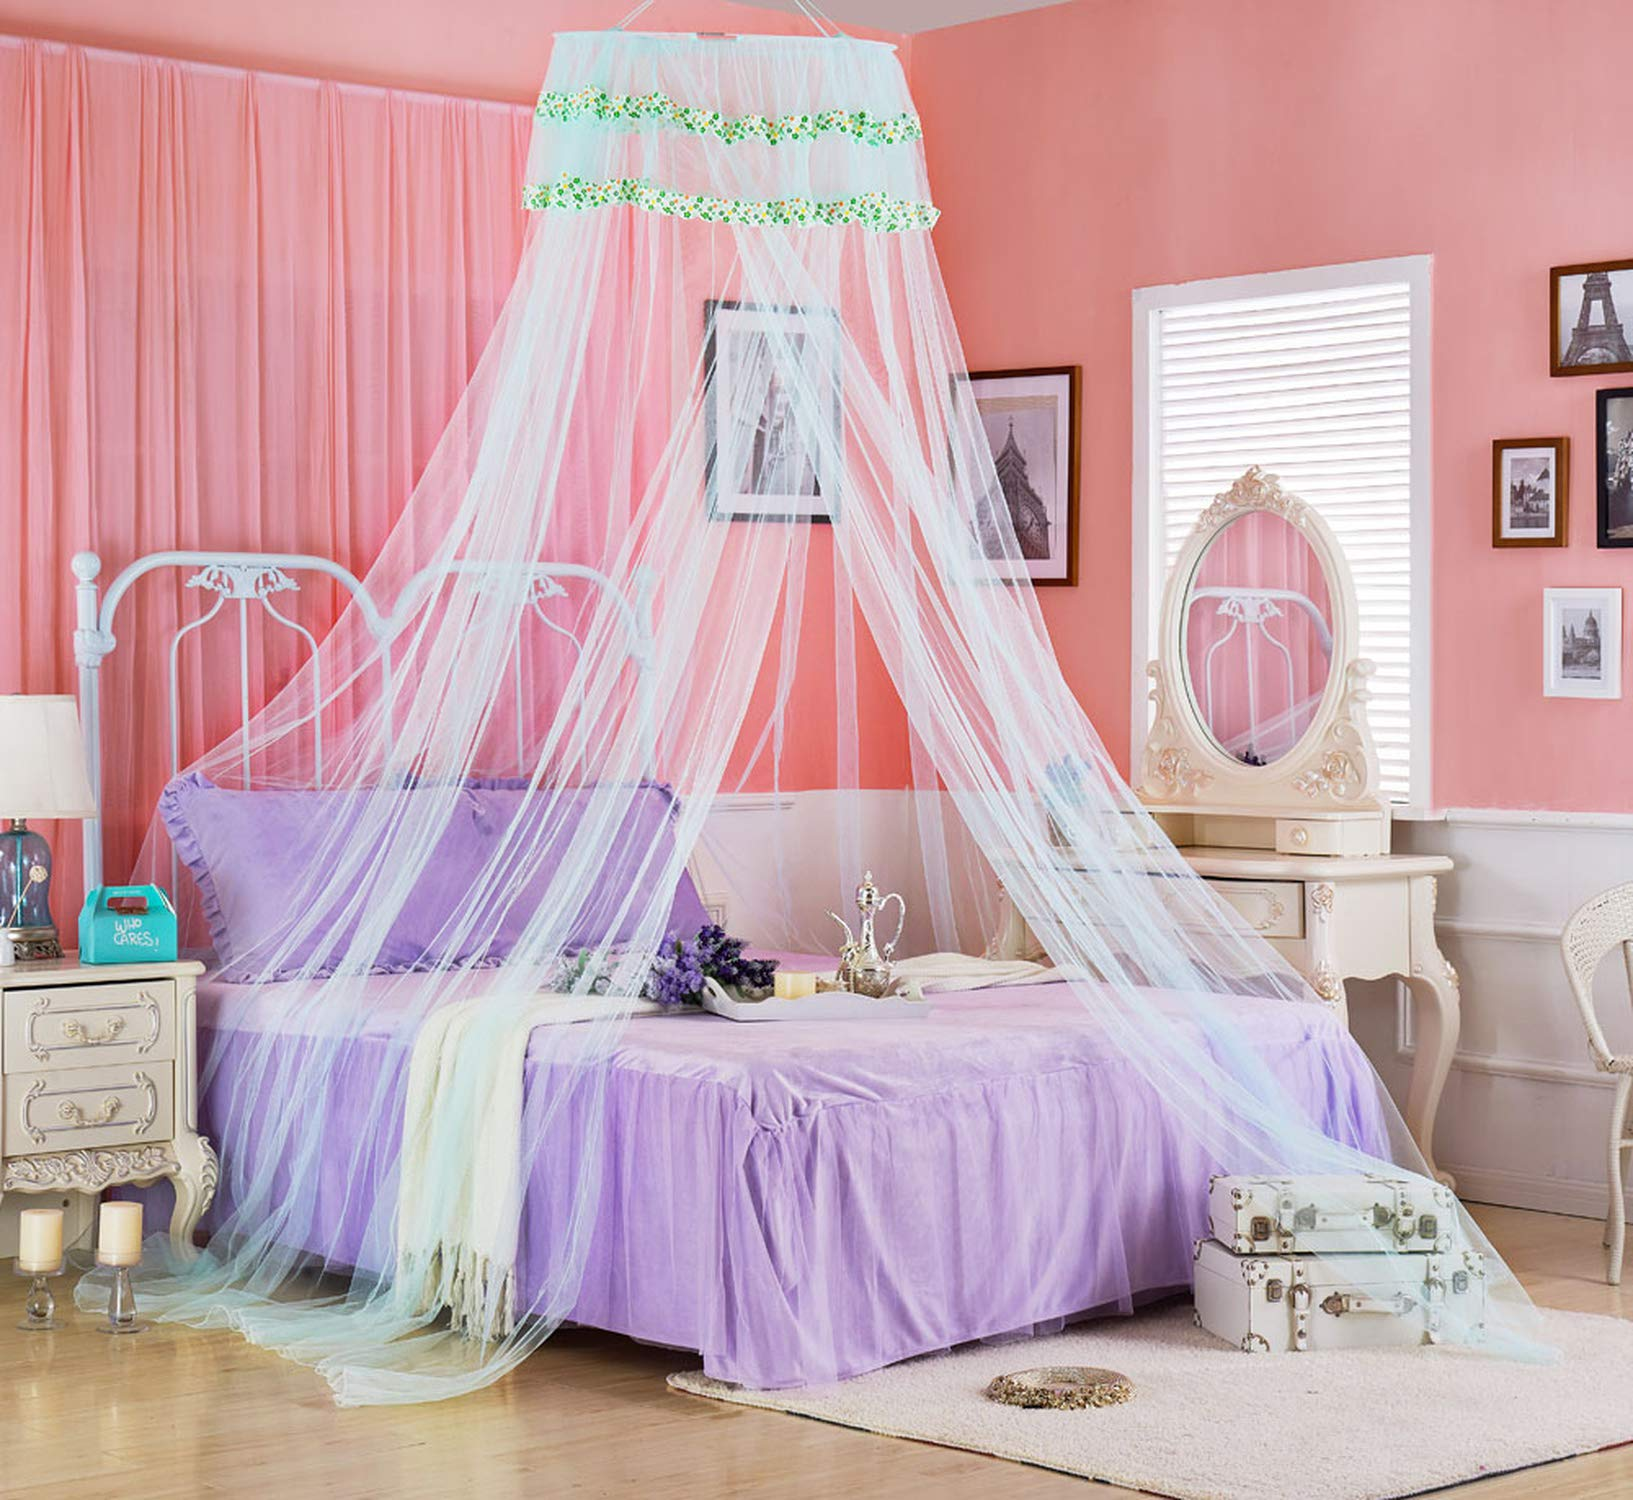 Portable Mosquito Net for Bed Canopy Round Canopy Netting Mesh Lace Curtain Bed Tent Anti Bug Insert Cibinlik Purple Nets,Pink,1.5m (5 feet) Bed by SuWuan mosquito net (Image #3)